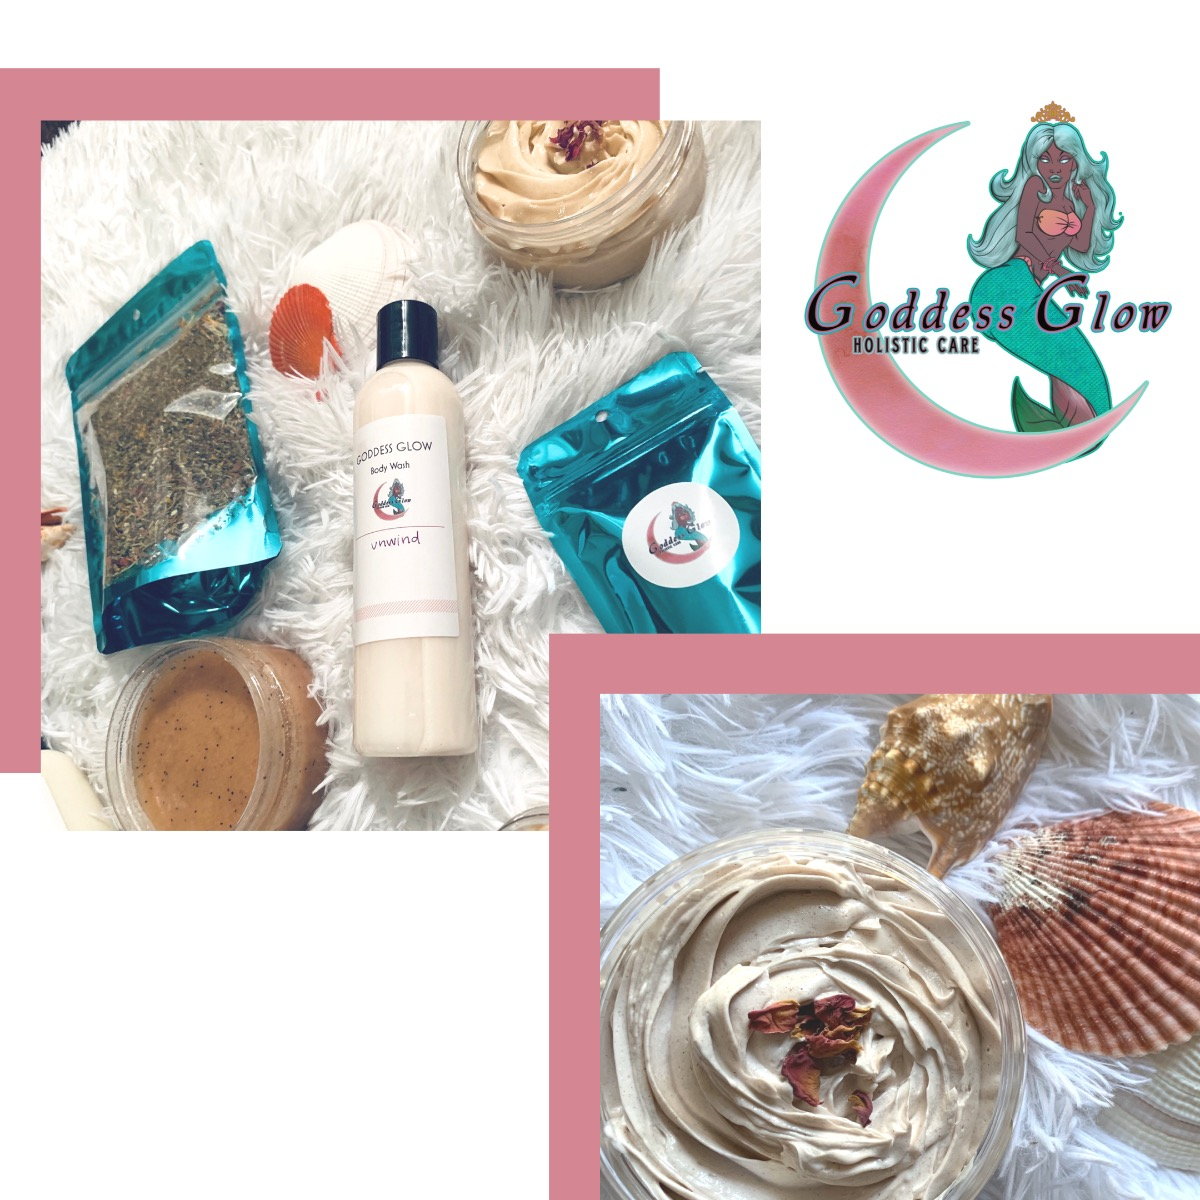 Goddess Glow Holistic Care